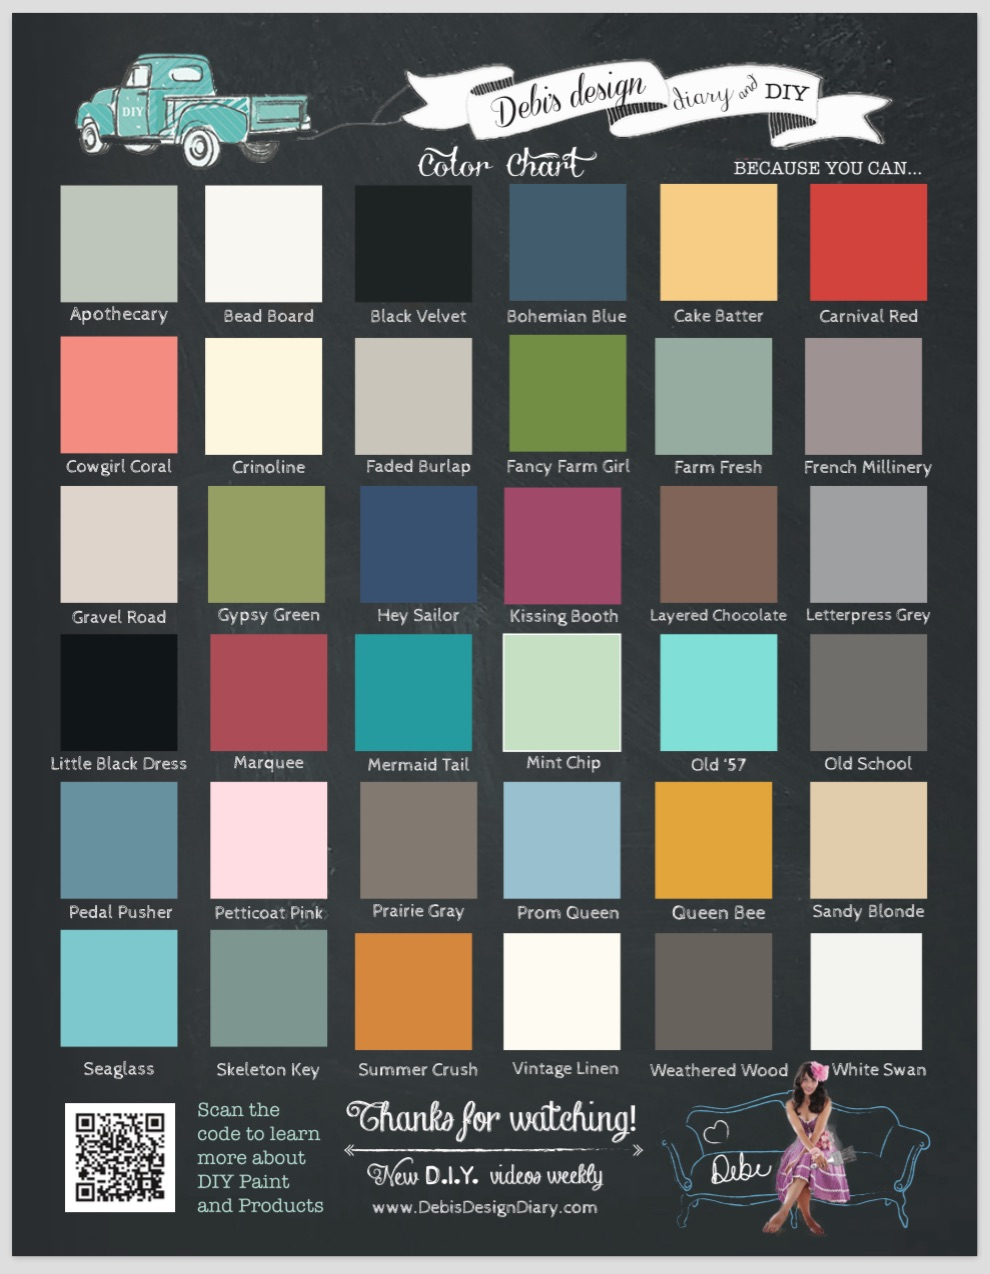 Sound color chart images free any chart examples sound color chart images free any chart examples sound color chart images free any chart examples nvjuhfo Choice Image